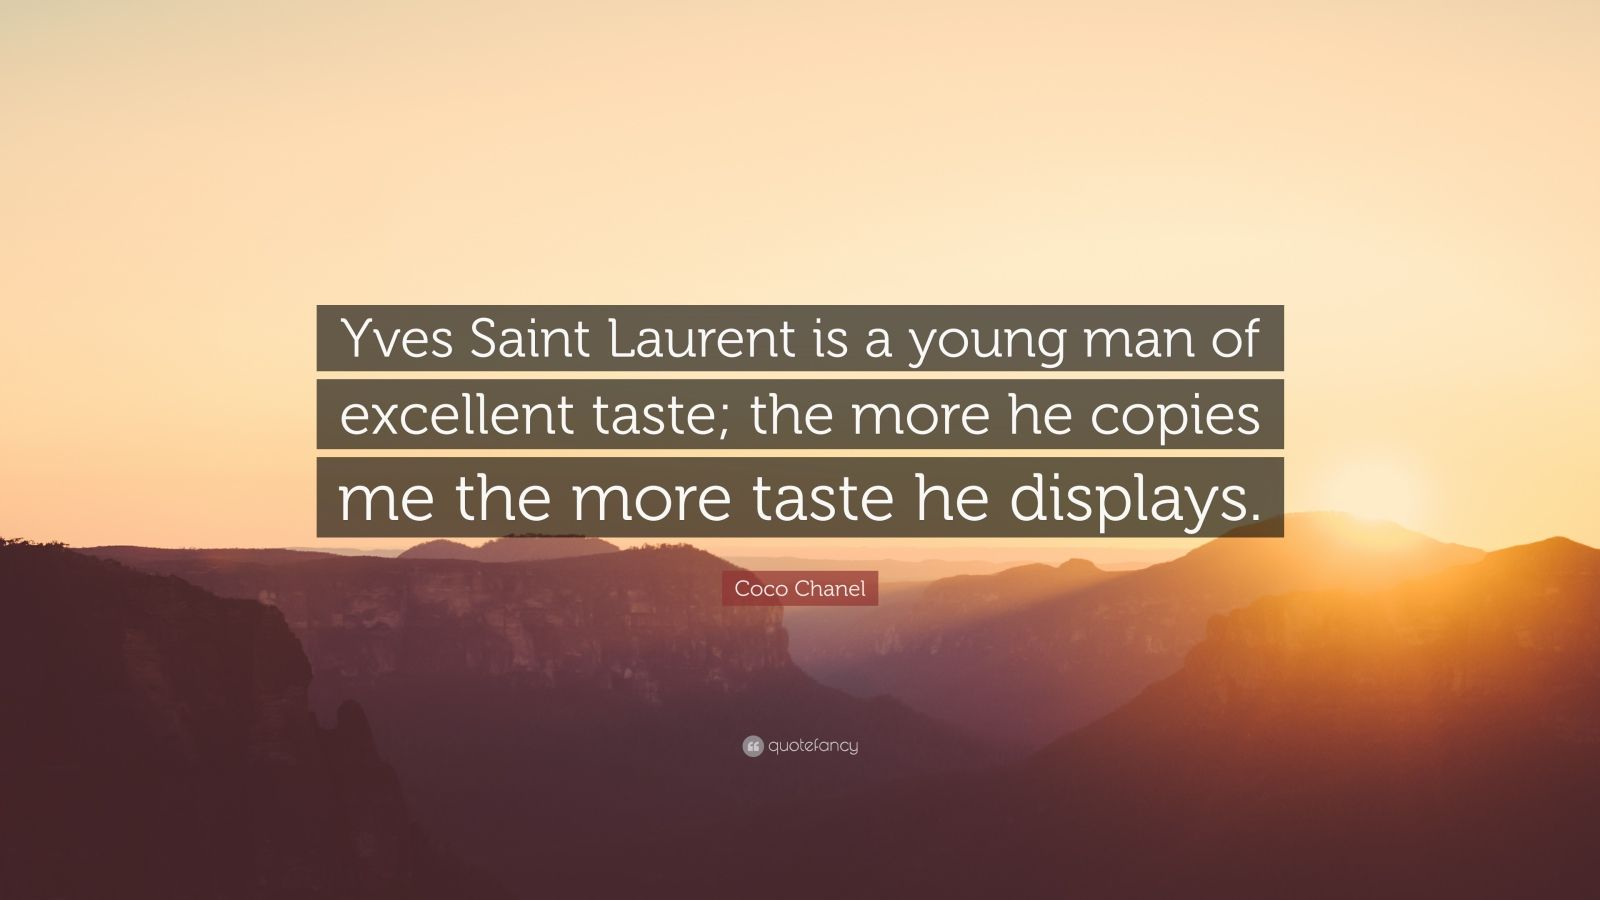 """Coco Chanel Quote: """"Yves Saint Laurent is a young man of excellent taste; the more he copies me the more taste he displays."""""""